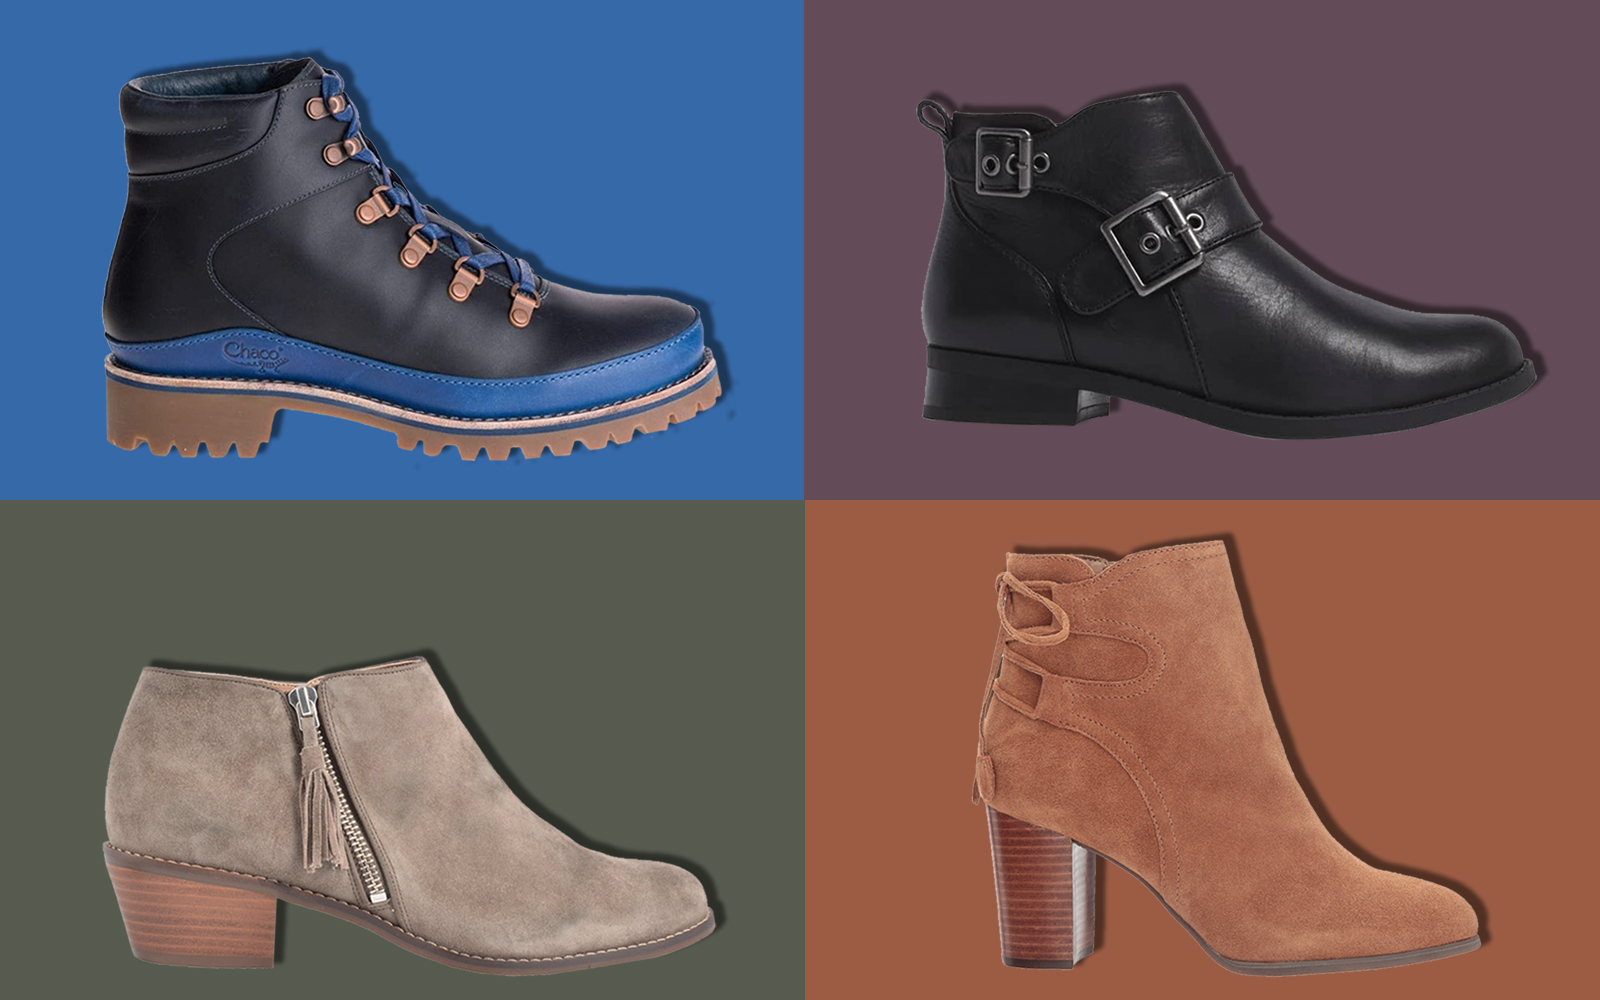 12 Comfy Travel Boots With Podiatrists' Highest Seal of Approval